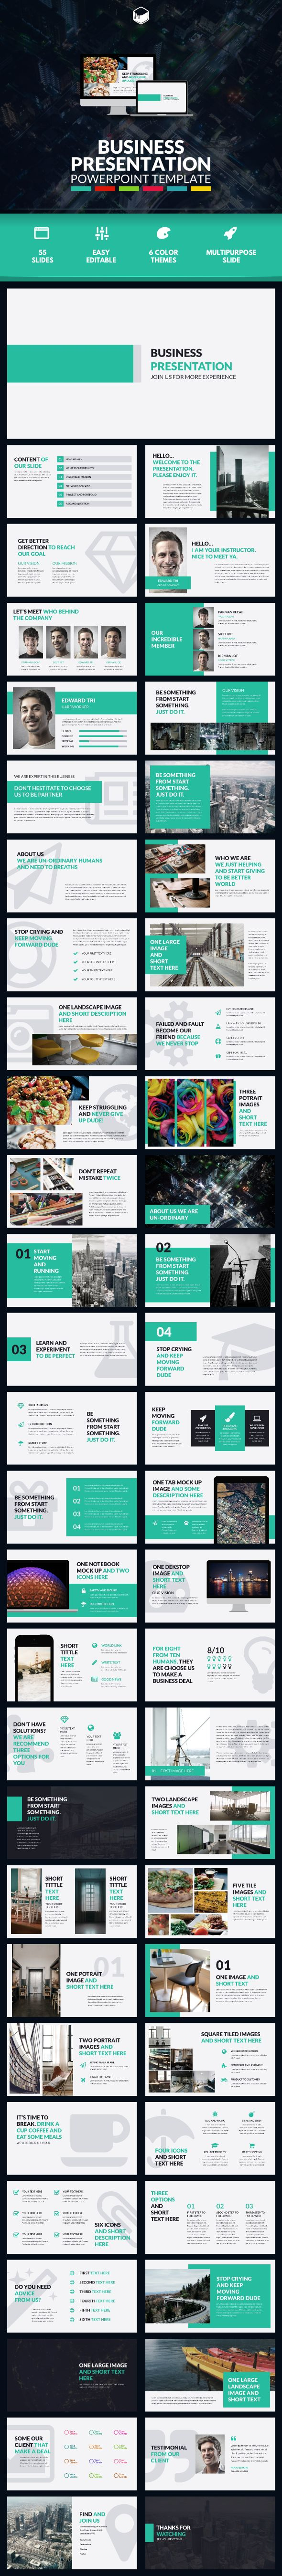 Business Presentation 3 PowerPoint Template